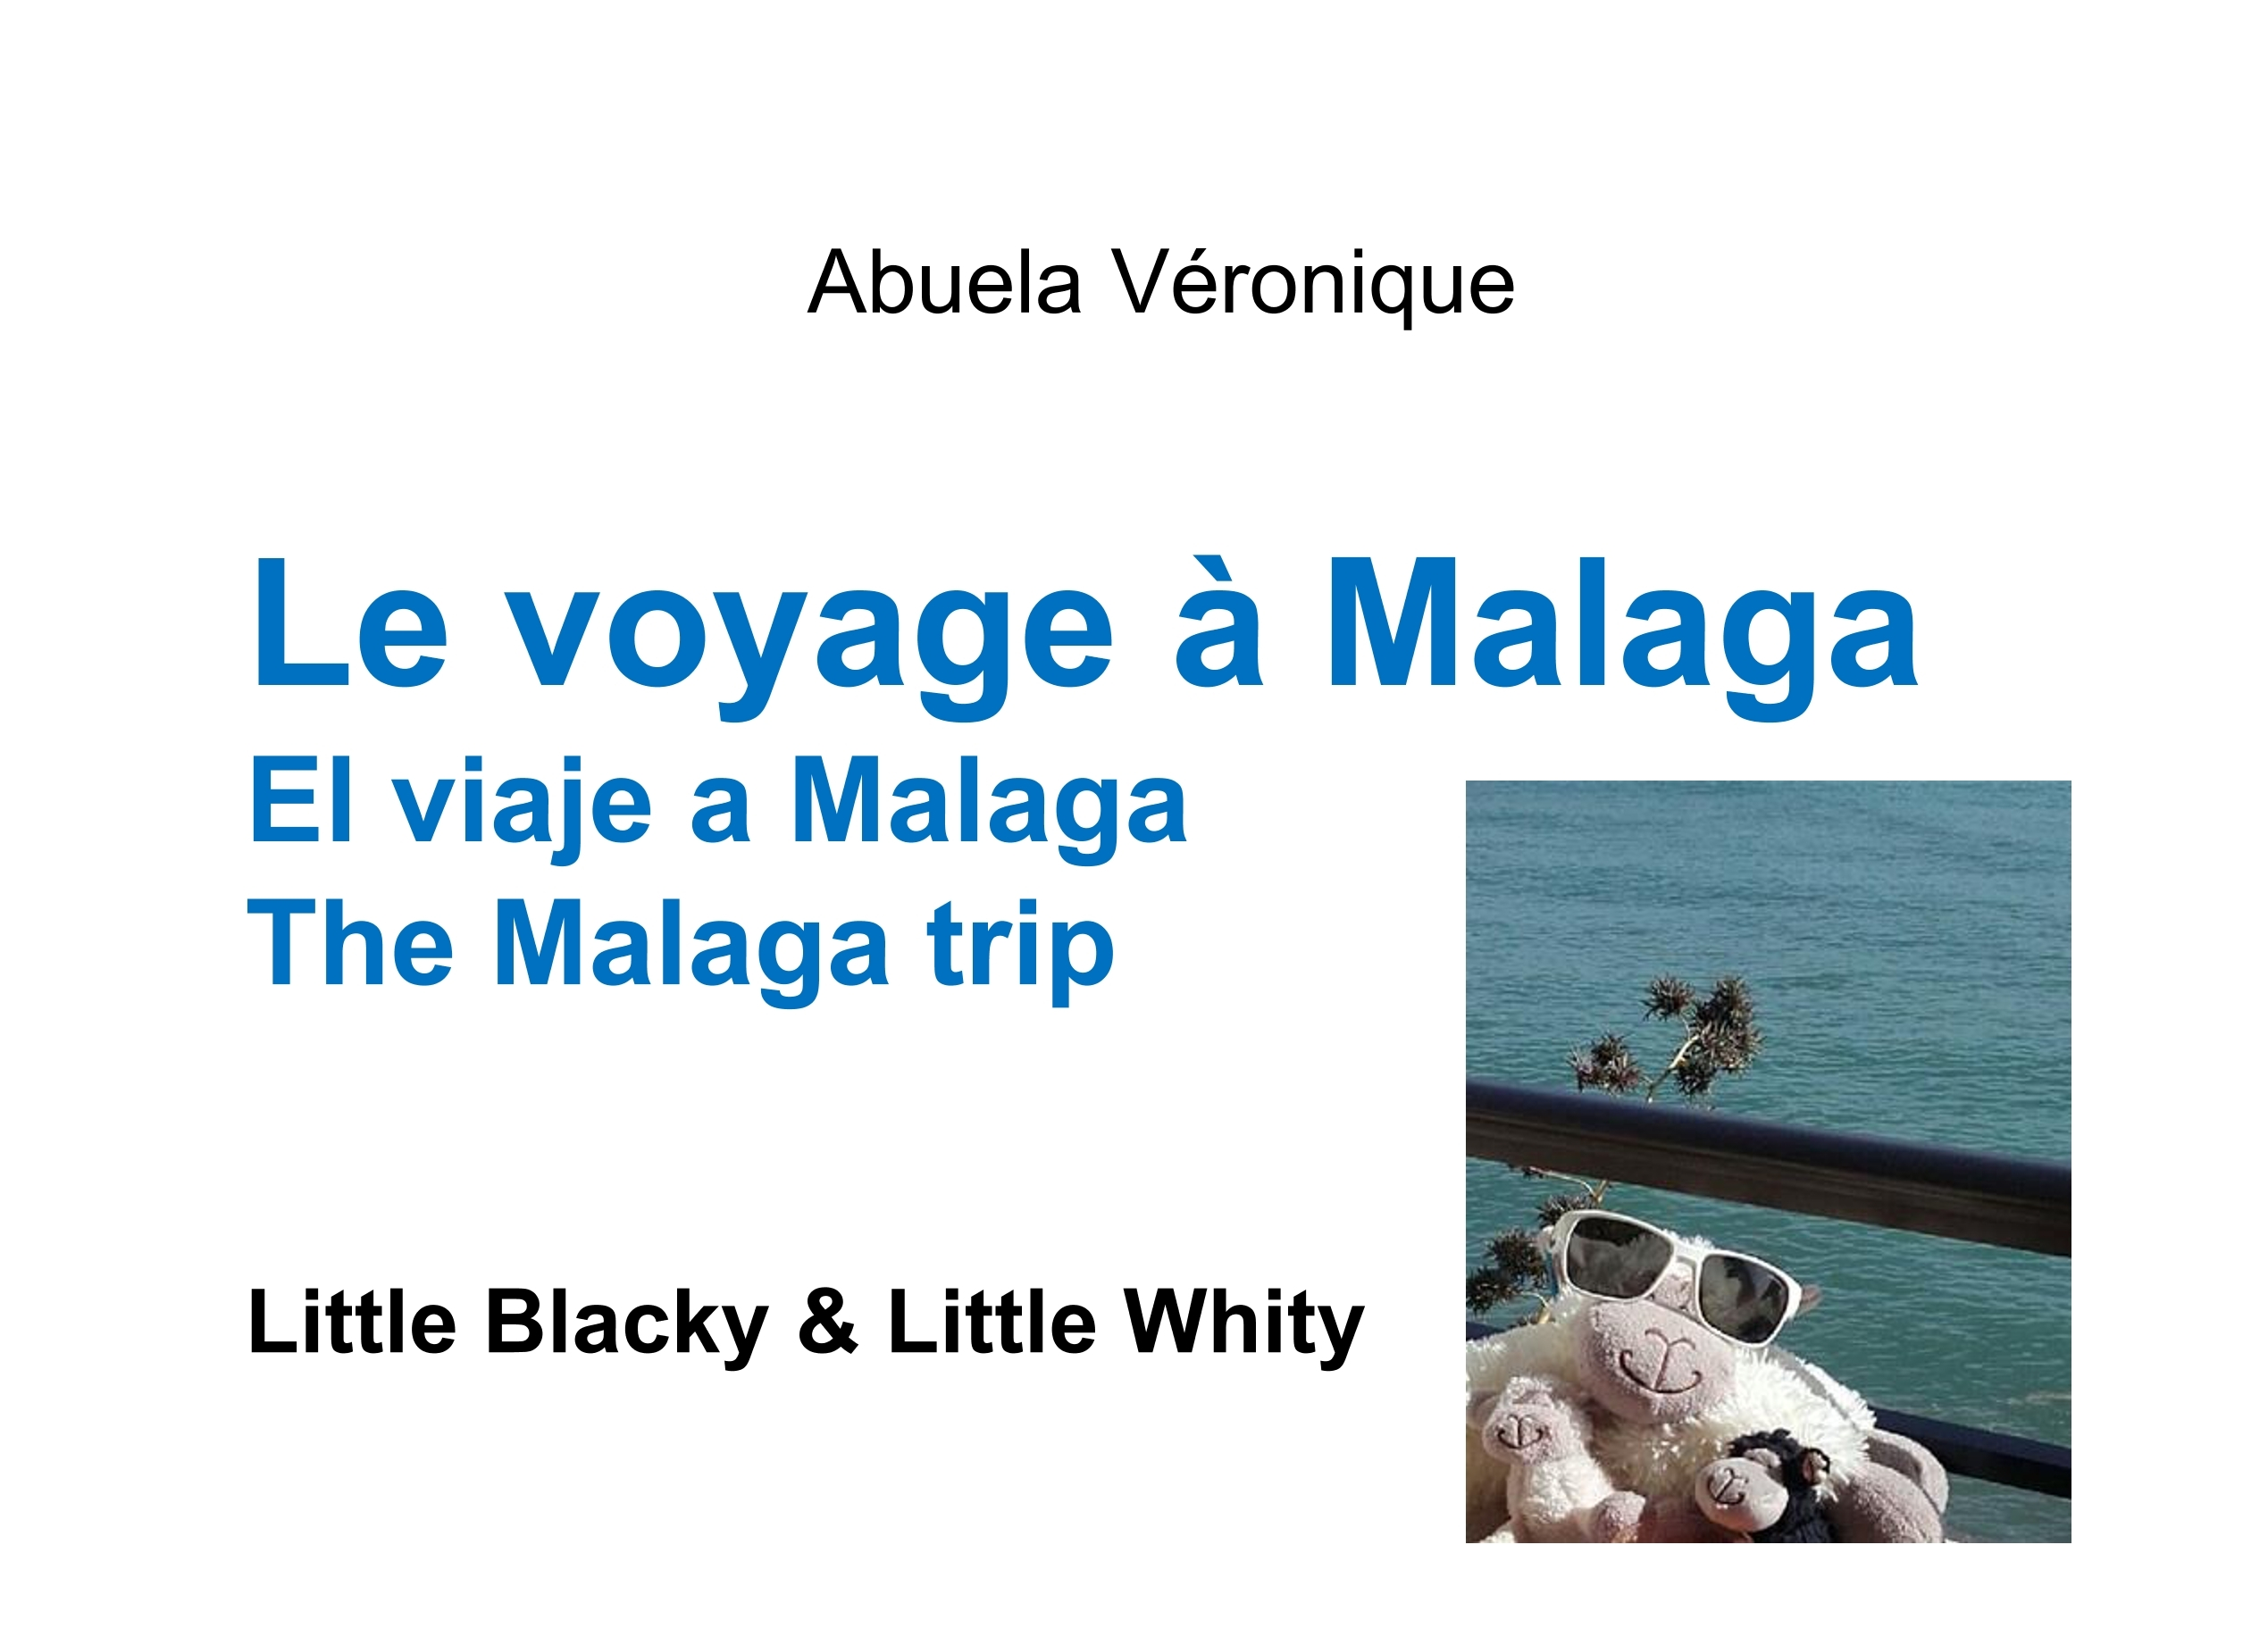 BLACKY & WHITY FAMILY - 2/- - LE VOYAGE A MALAGA - LITTLE BLACKY ET LITTLE WHITY